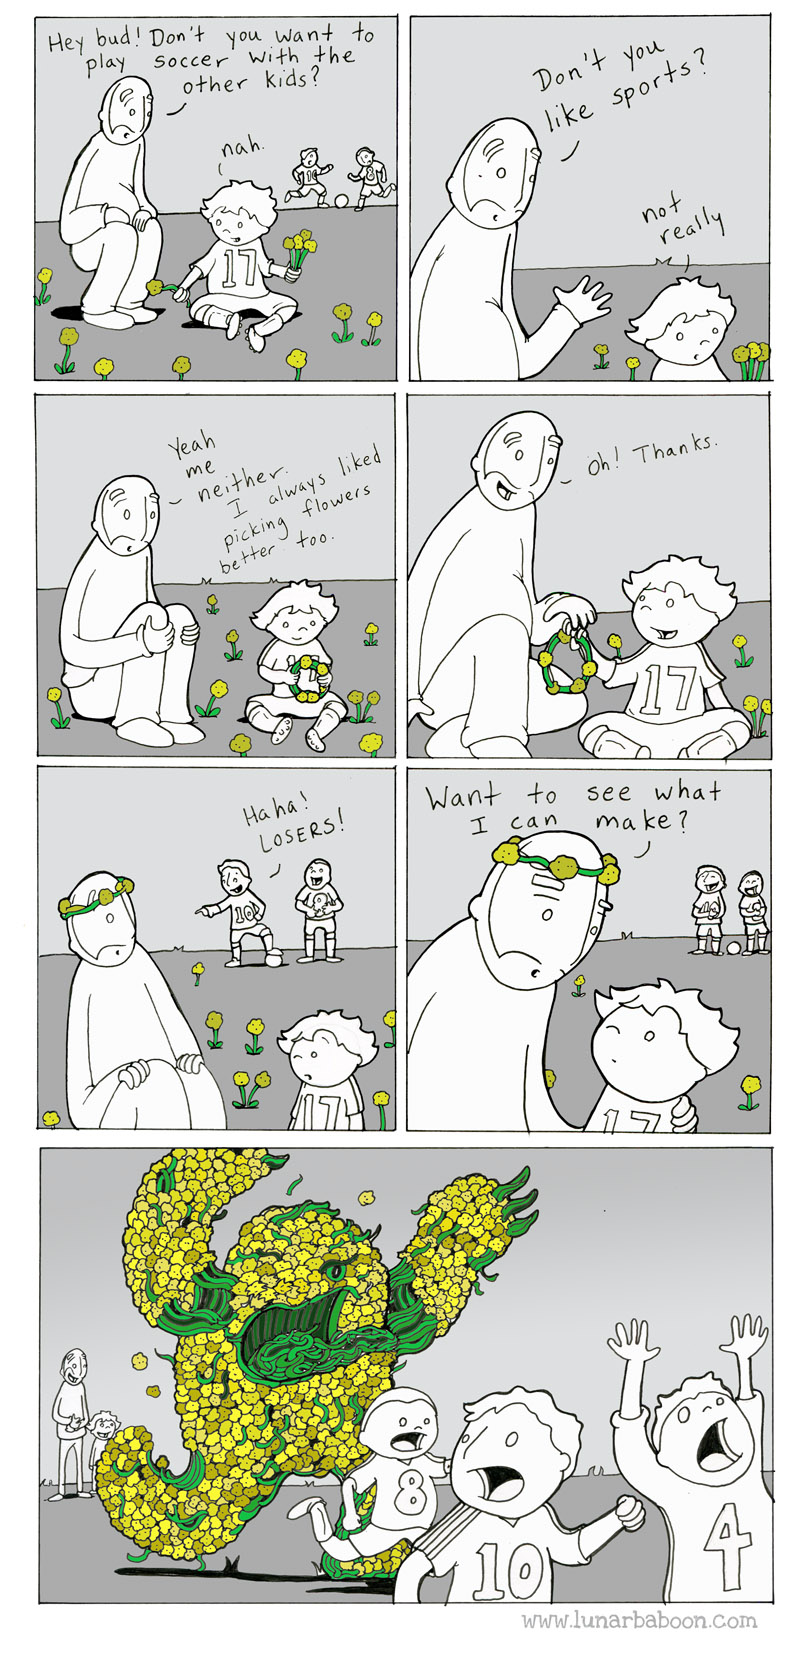 lunarbaboon-comics-flowers